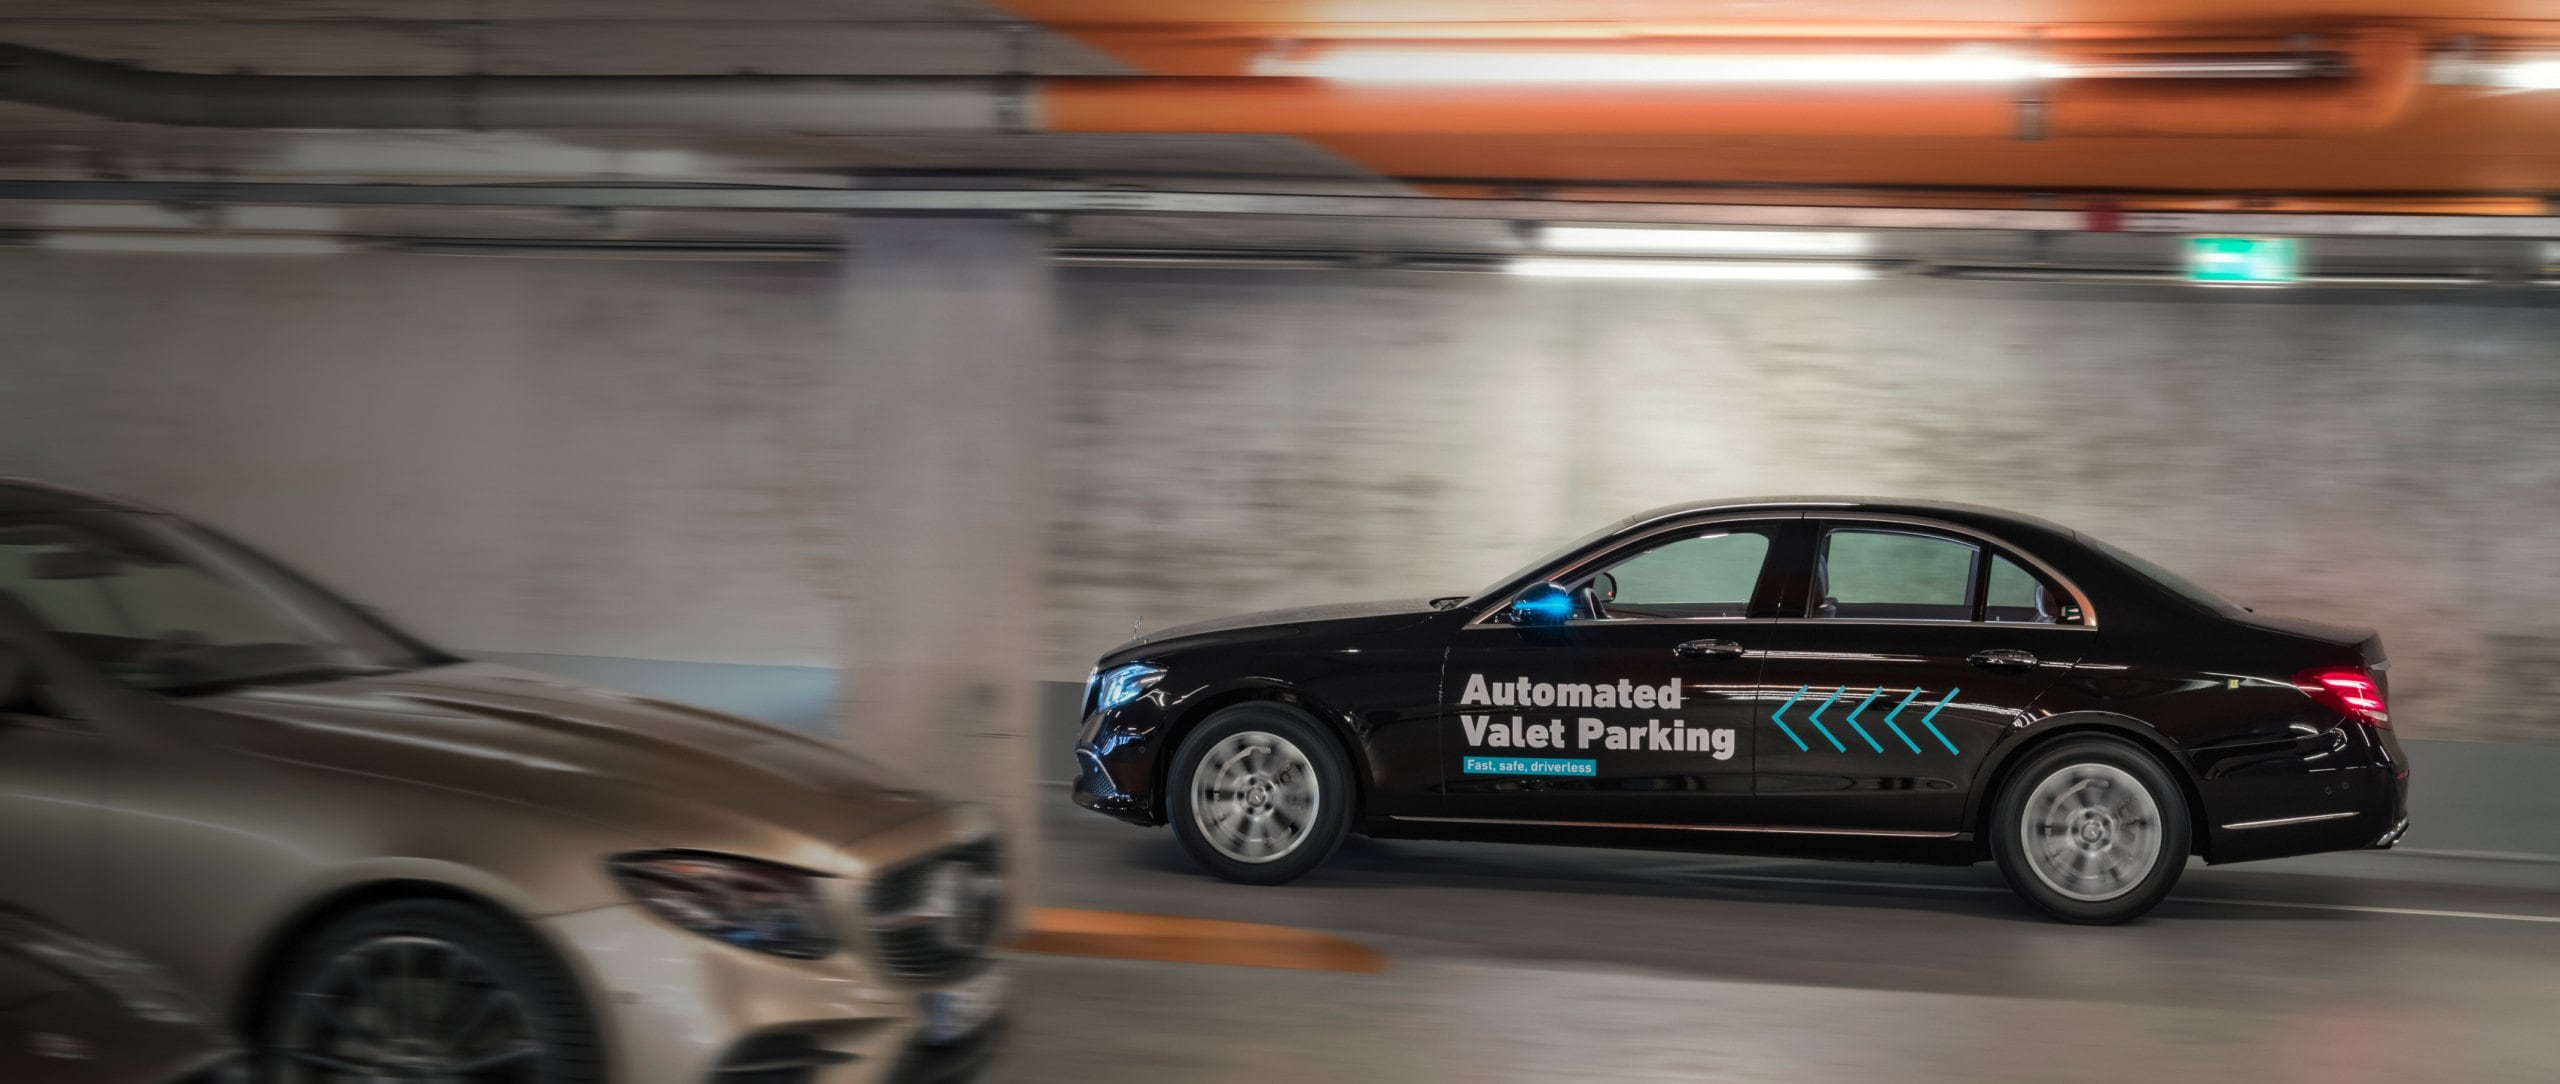 Driverless parking in real-life traffic: World premiere in the multi-storey car park of the Mercedes-Benz Museum.